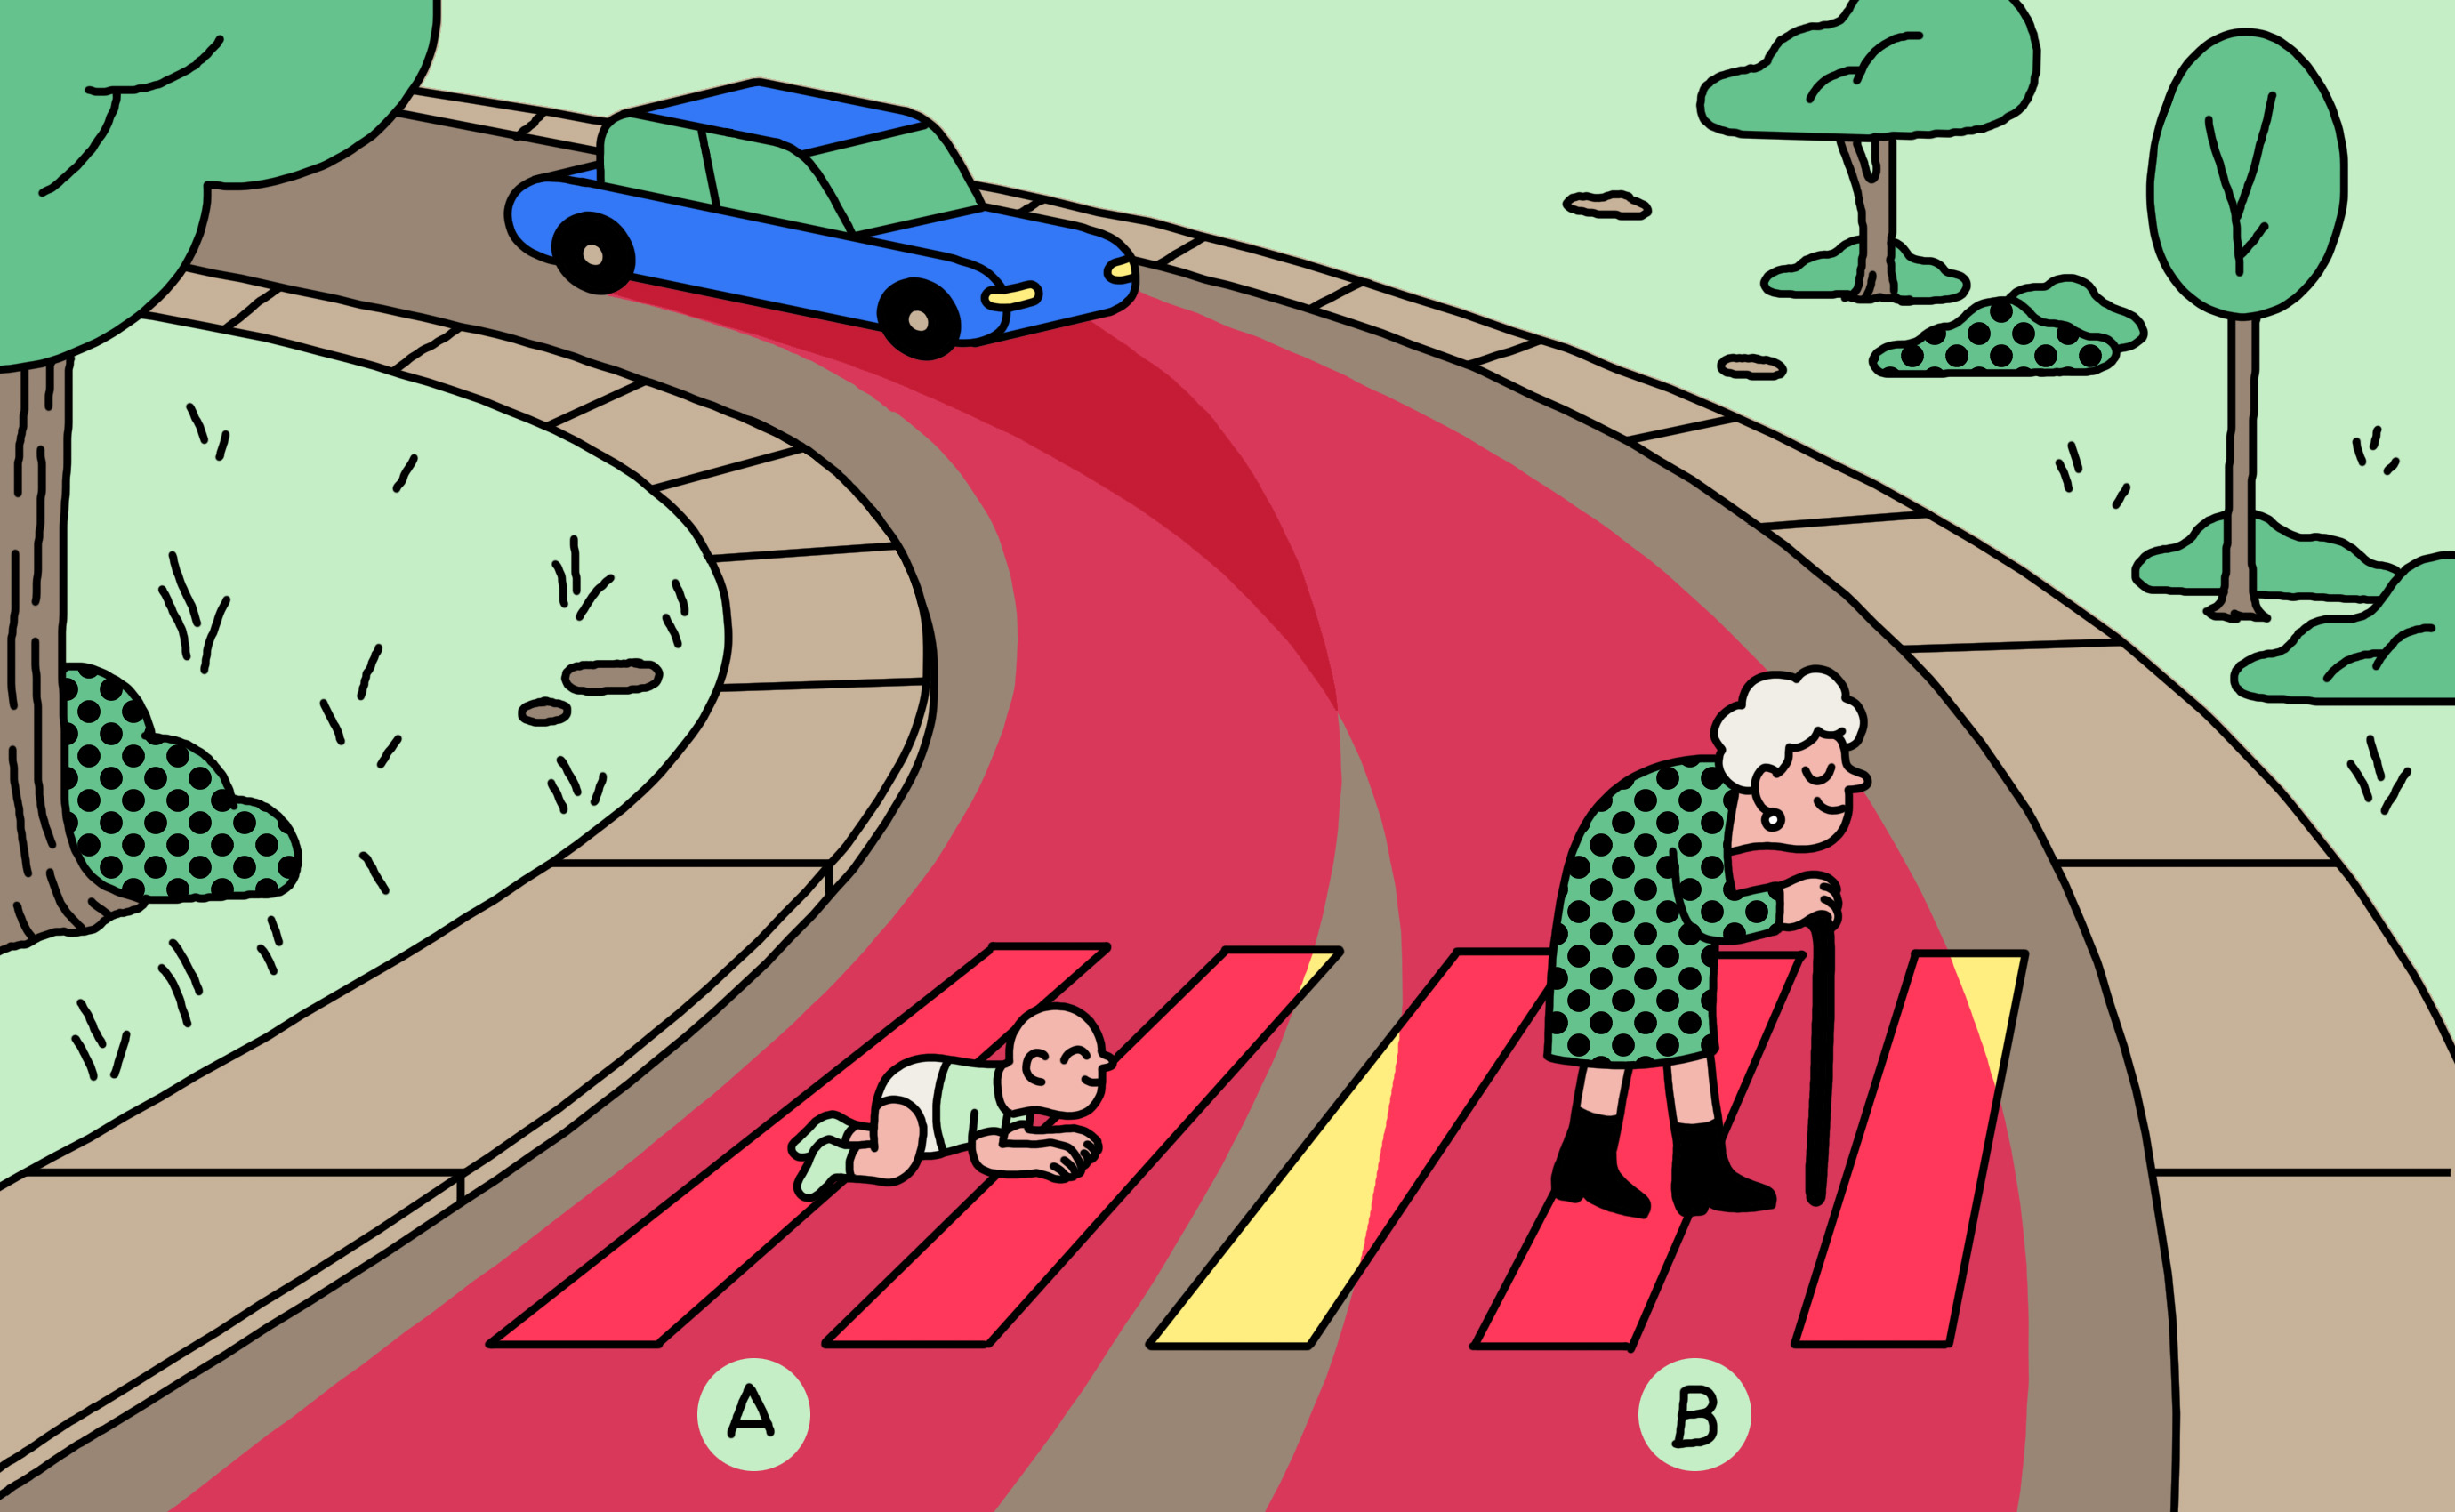 "<b><a href=""https://www.technologyreview.com/s/612341/a-global-ethics-study-aims-to-help-ai-solve-the-self-driving-trolley-problem/""_blank"">Should a self-driving car kill the baby or the grandma? Depends on where you're from.</a></b> <br> Illustration by Simon Landrein"